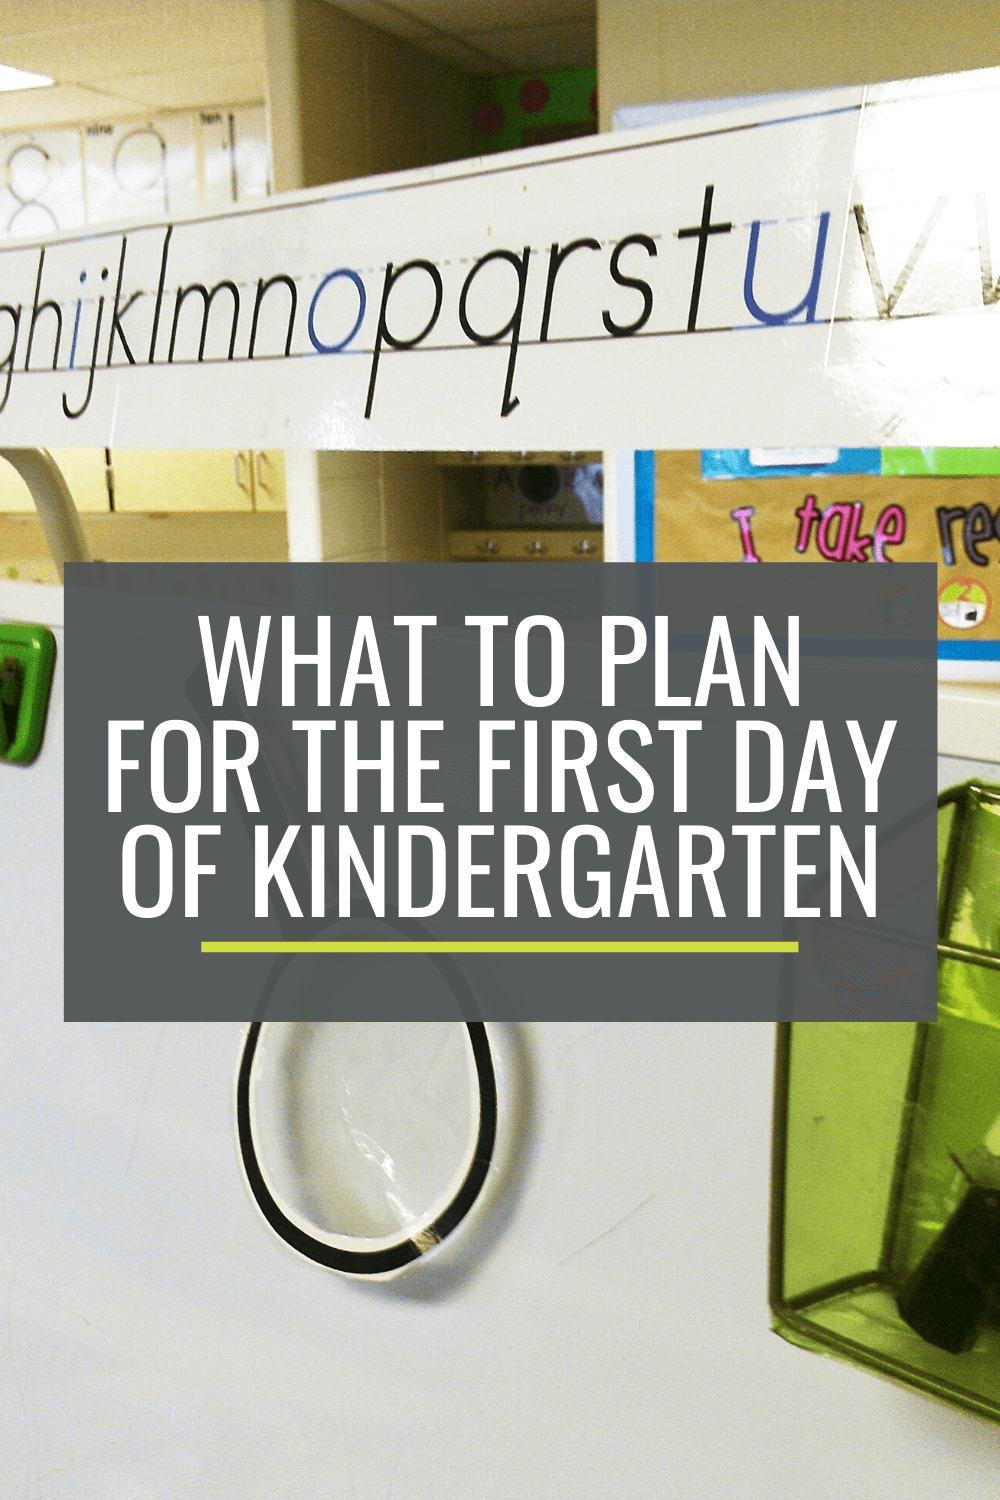 What to Plan for the First Day of Kindergarten